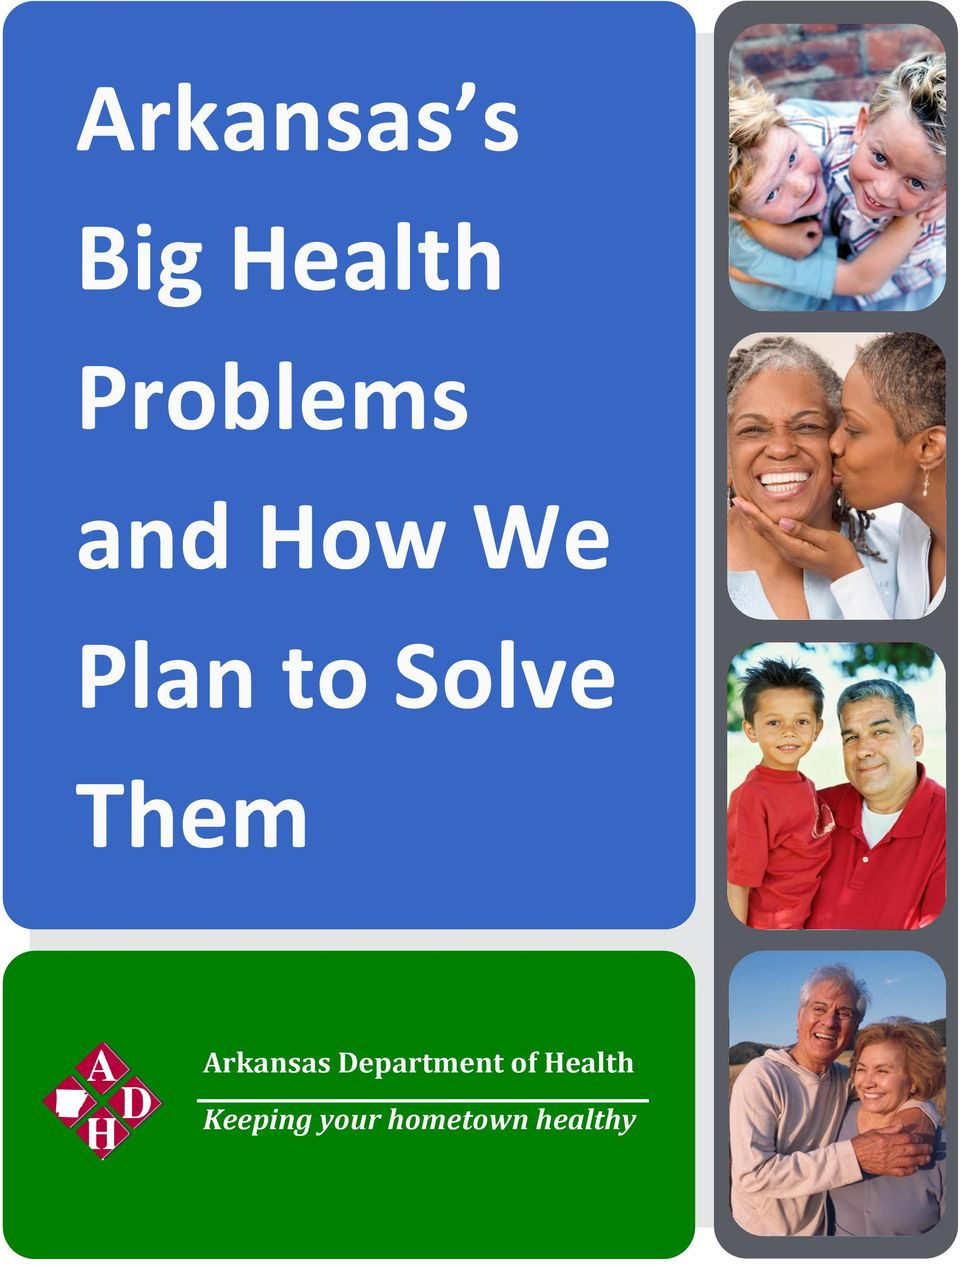 Arkansas Department of Health